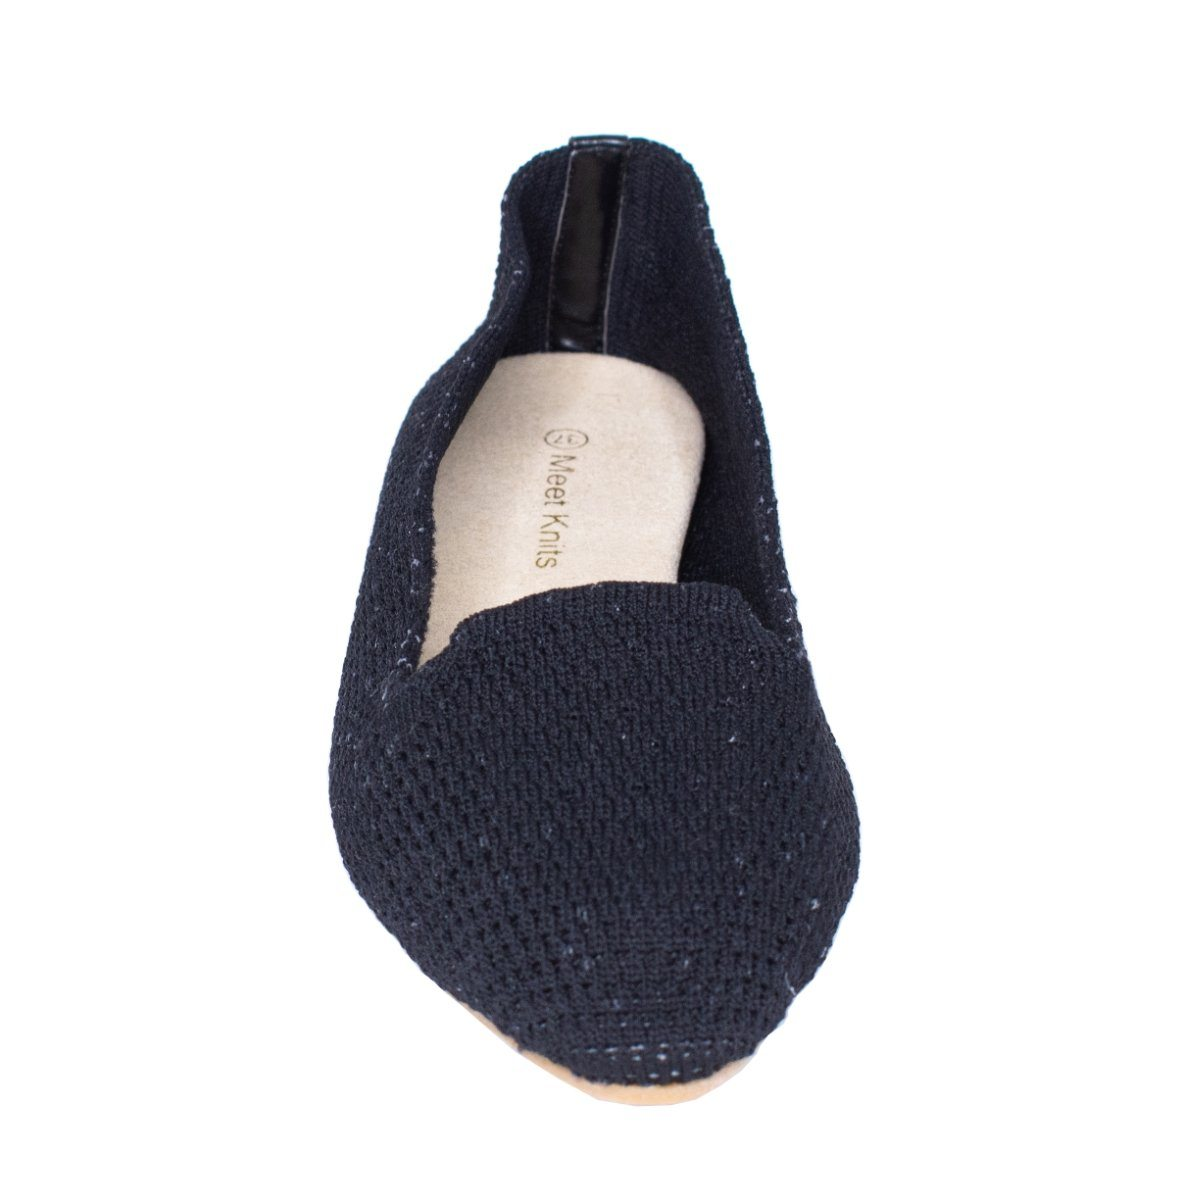 Front close view of black knitted flat slip on shoes